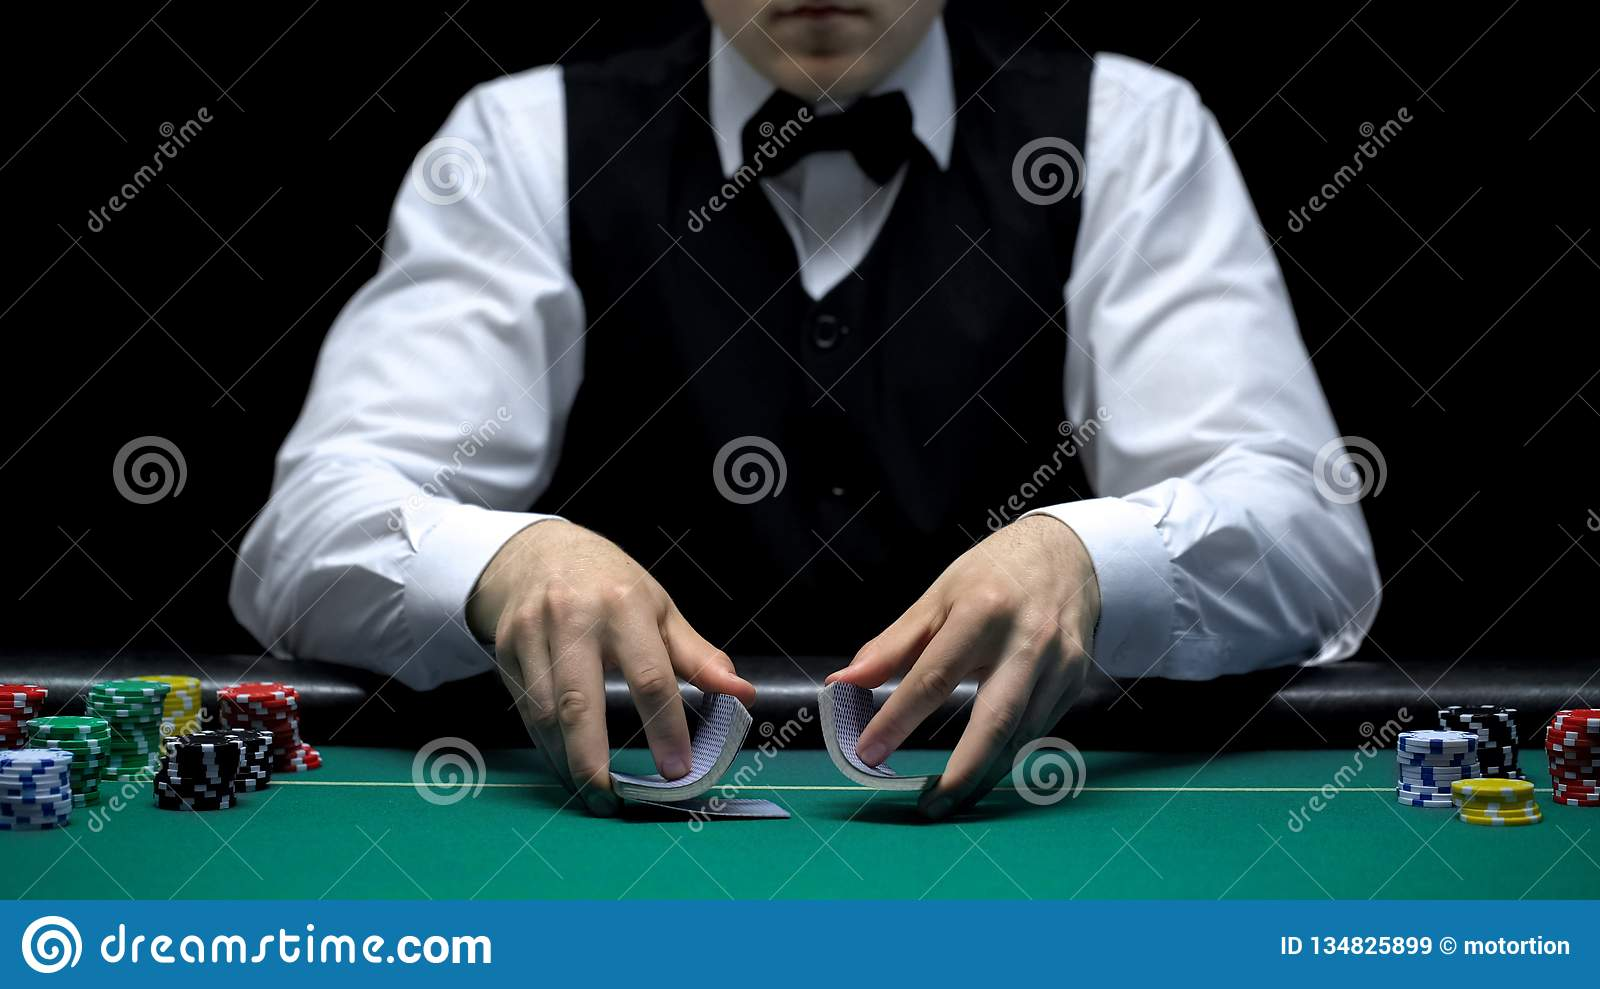 Casino dealer making shuffling tricks with cards, gambling, lucky poker game